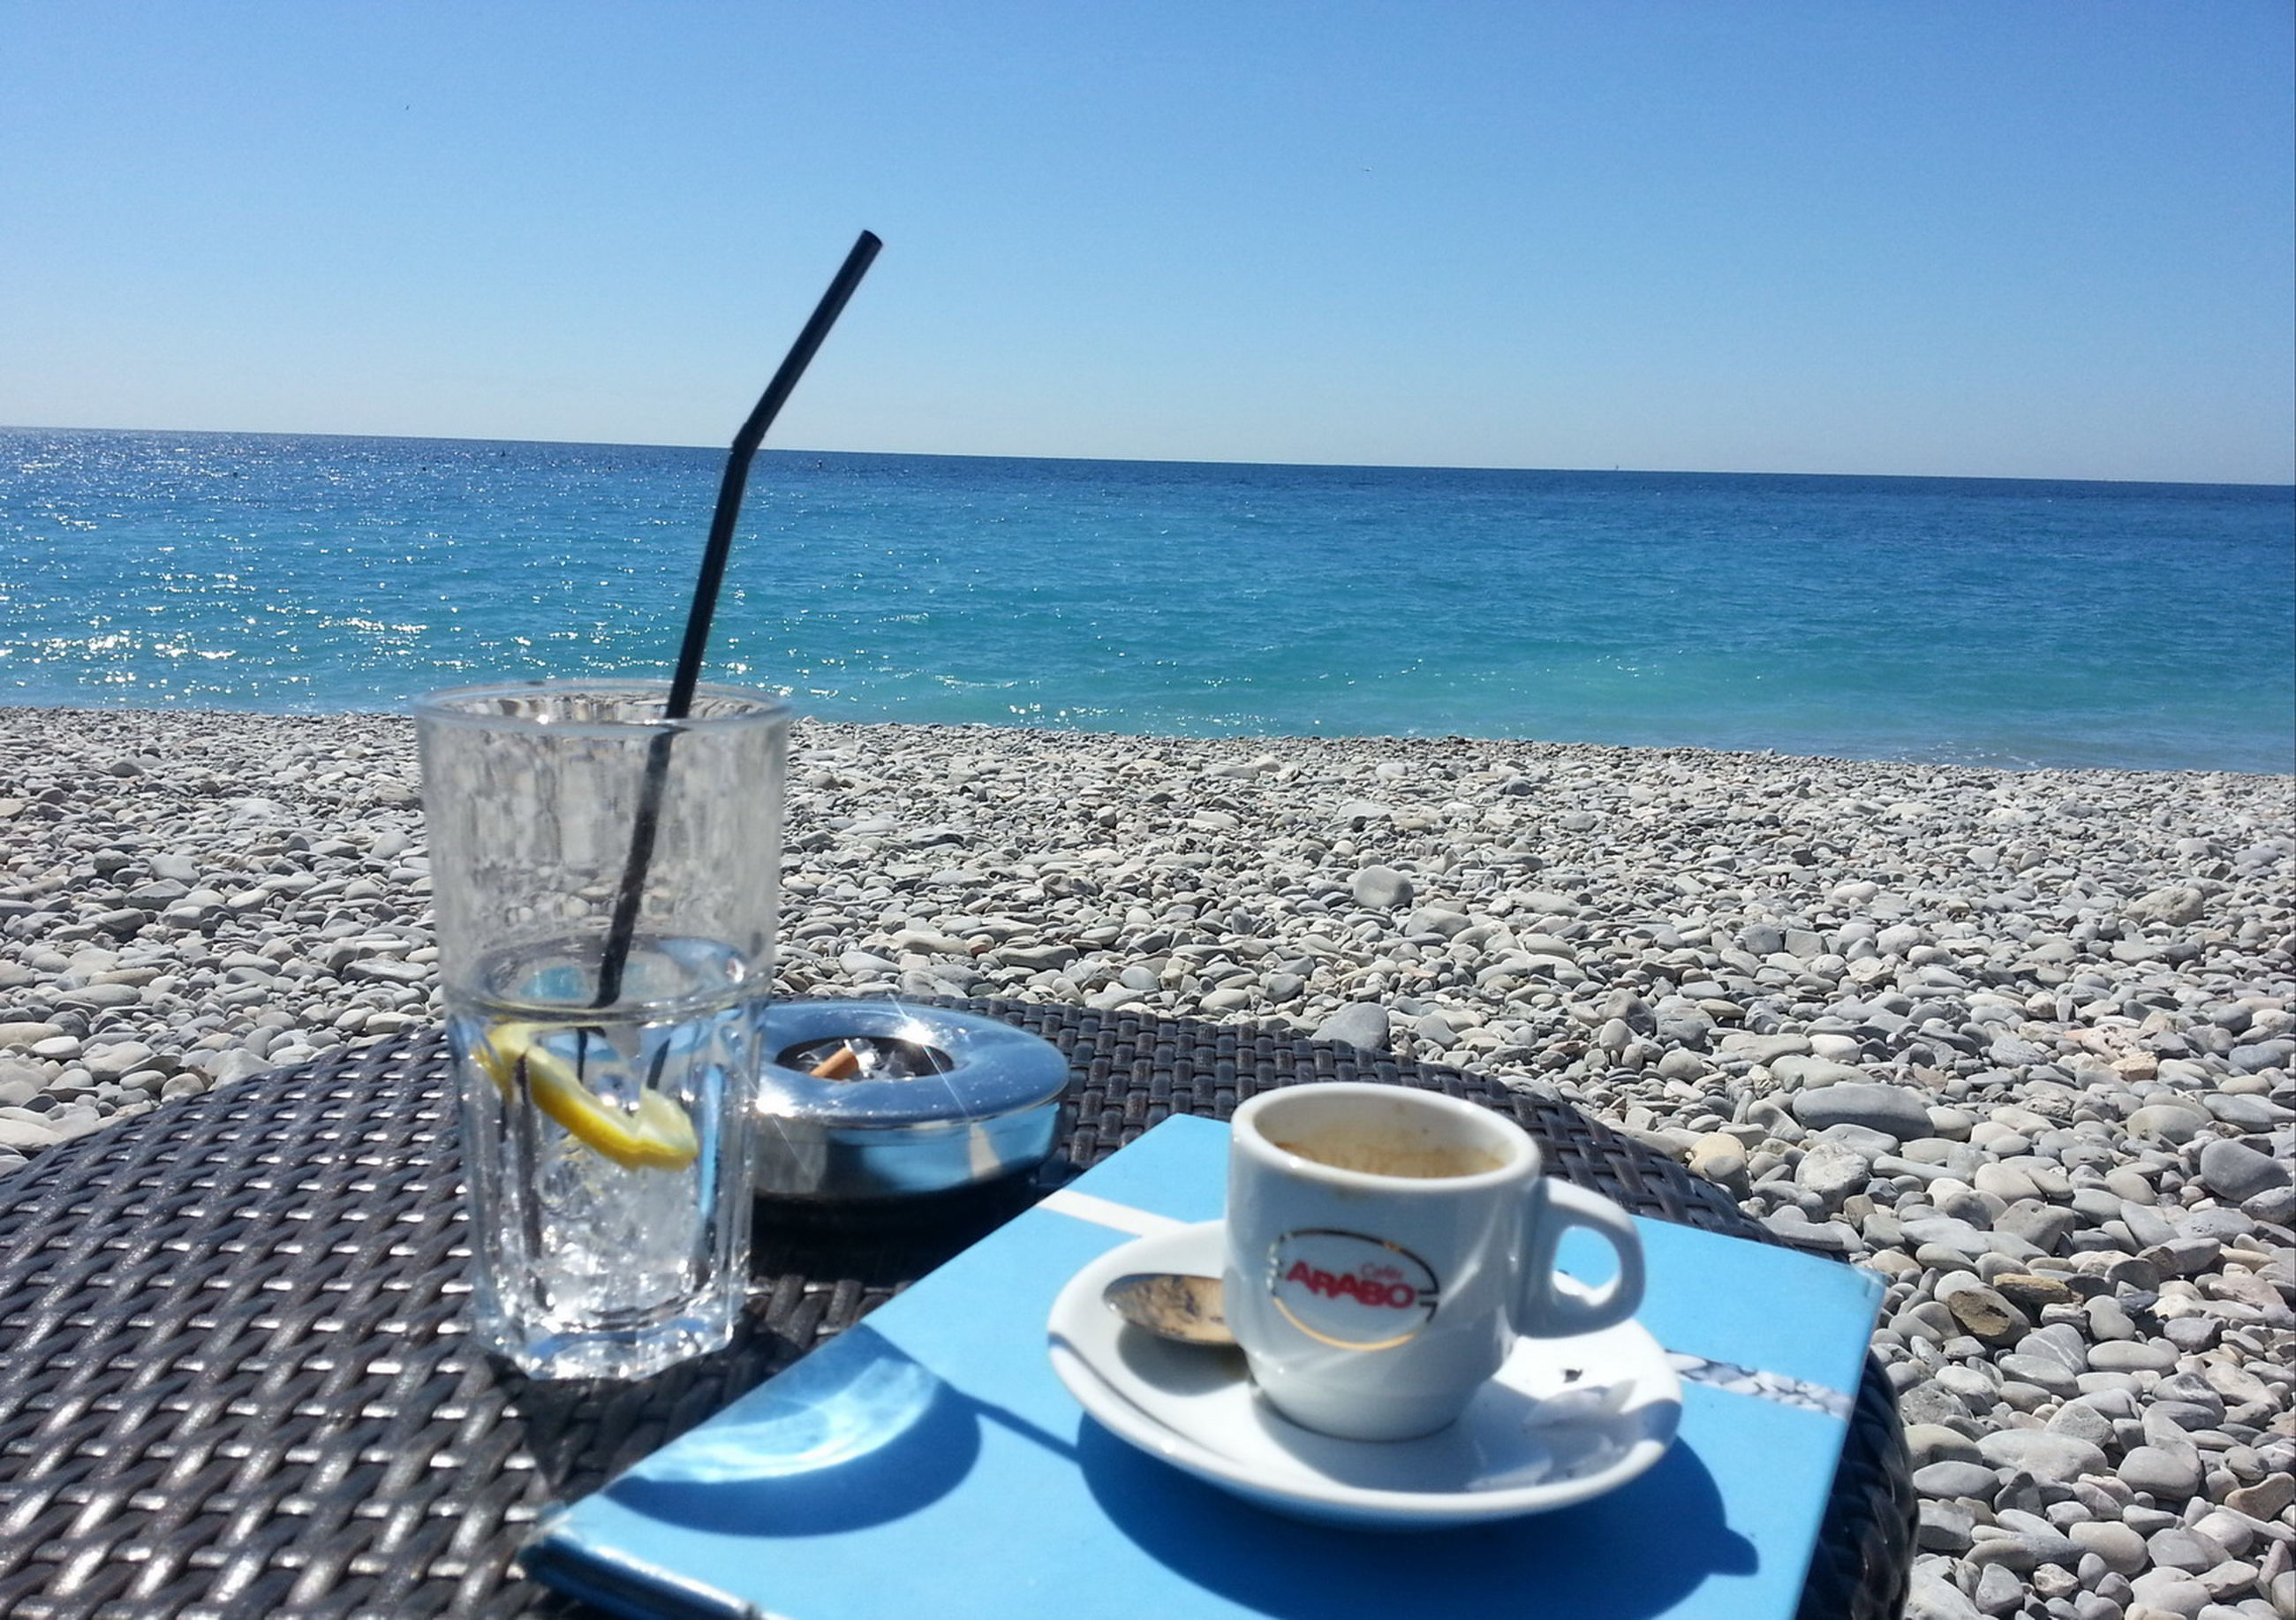 sea, horizon over water, water, blue, clear sky, beach, shore, tranquility, tranquil scene, copy space, table, sky, nature, food and drink, scenics, nautical vessel, day, drink, beauty in nature, sunlight